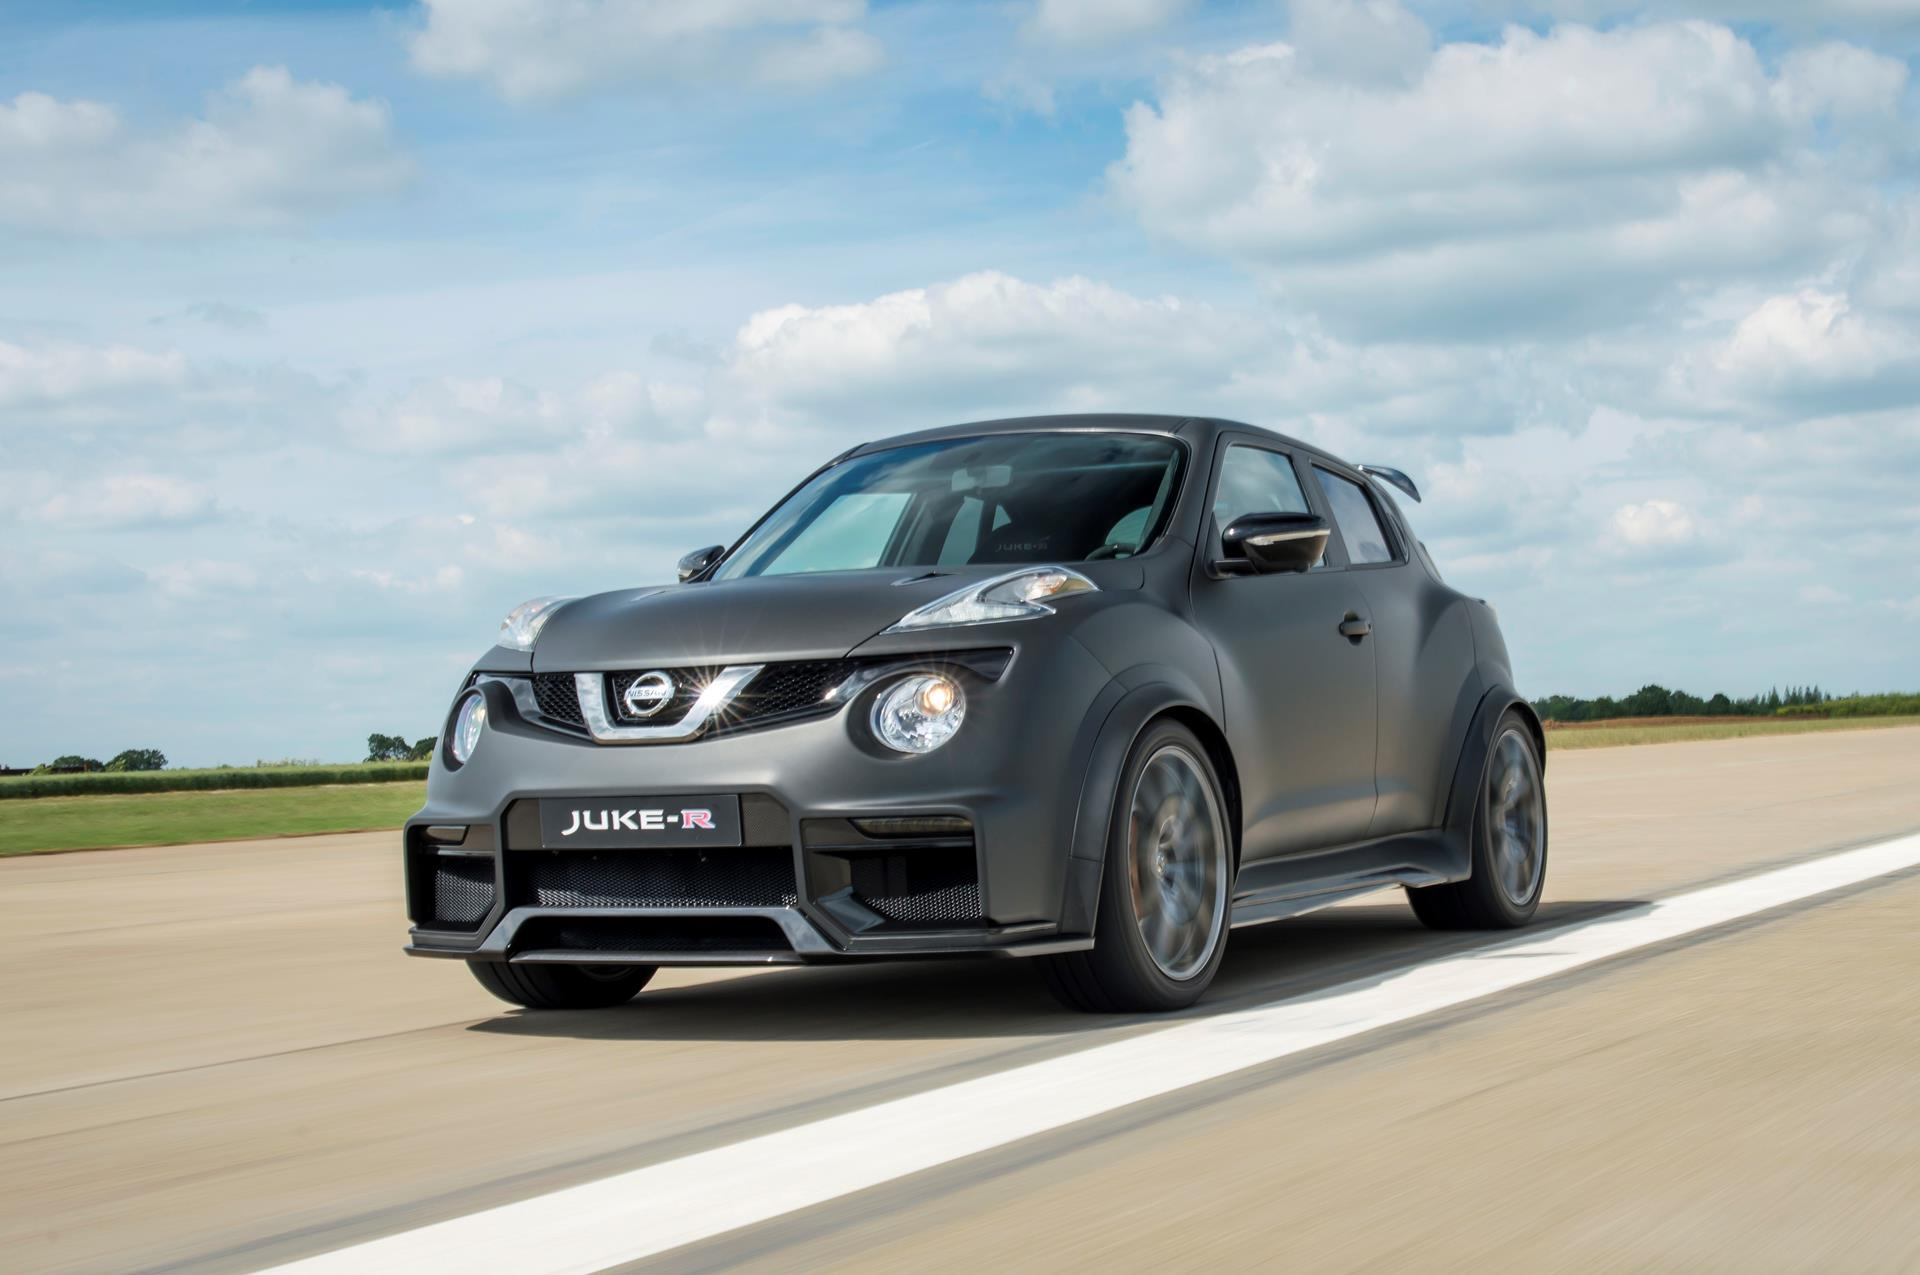 2016 nissan juke r 2 0 news and information for Nissan juke reserverad